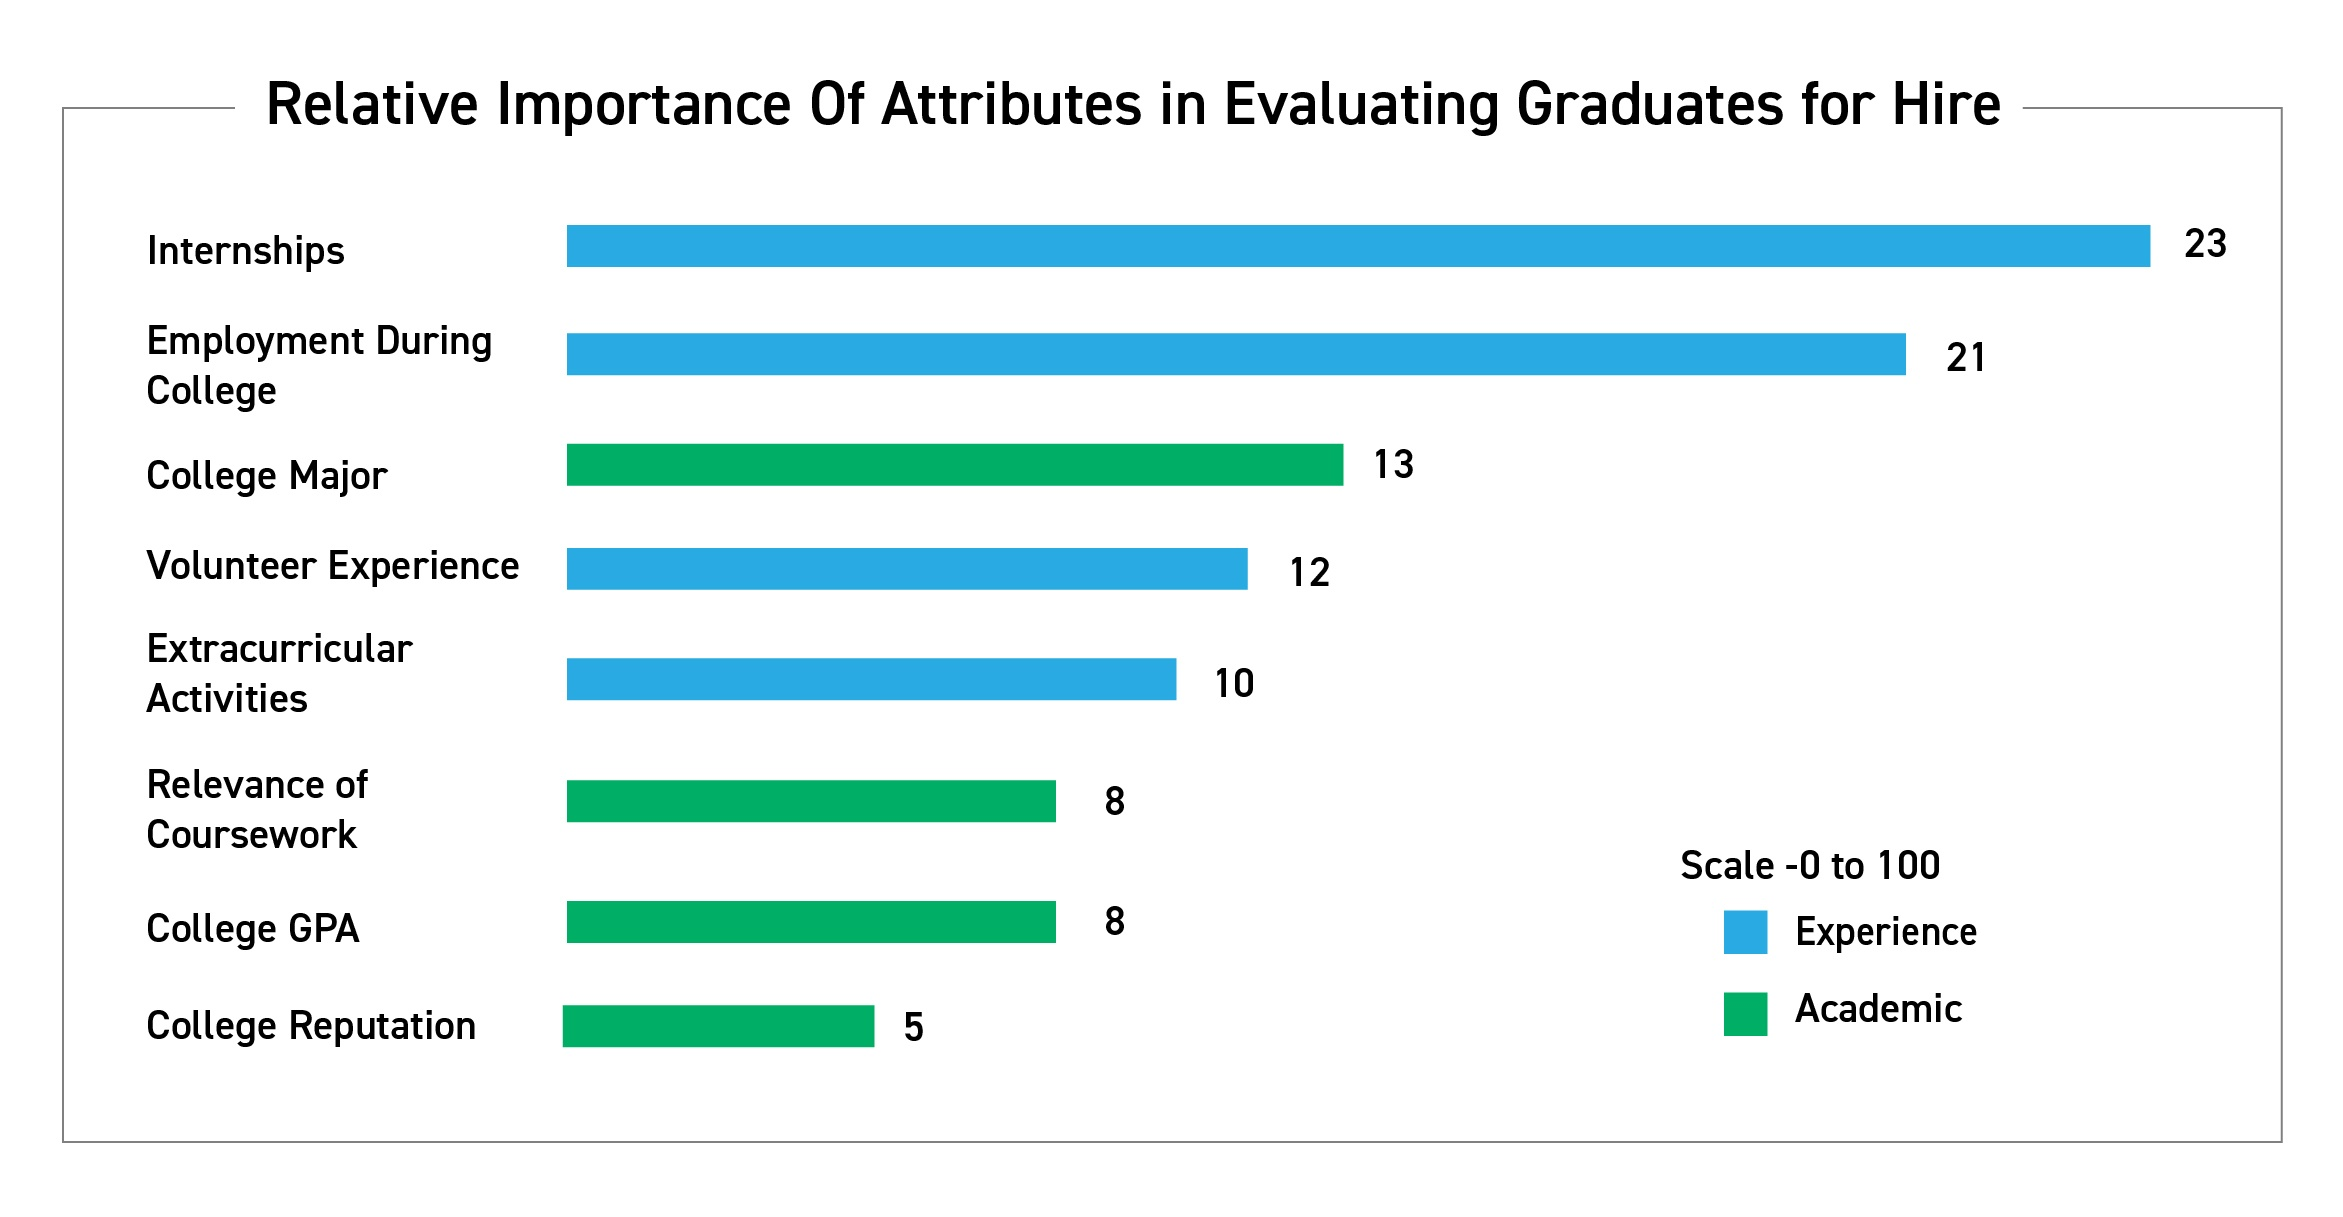 relative importance of attributes in evaluating graduates for hire